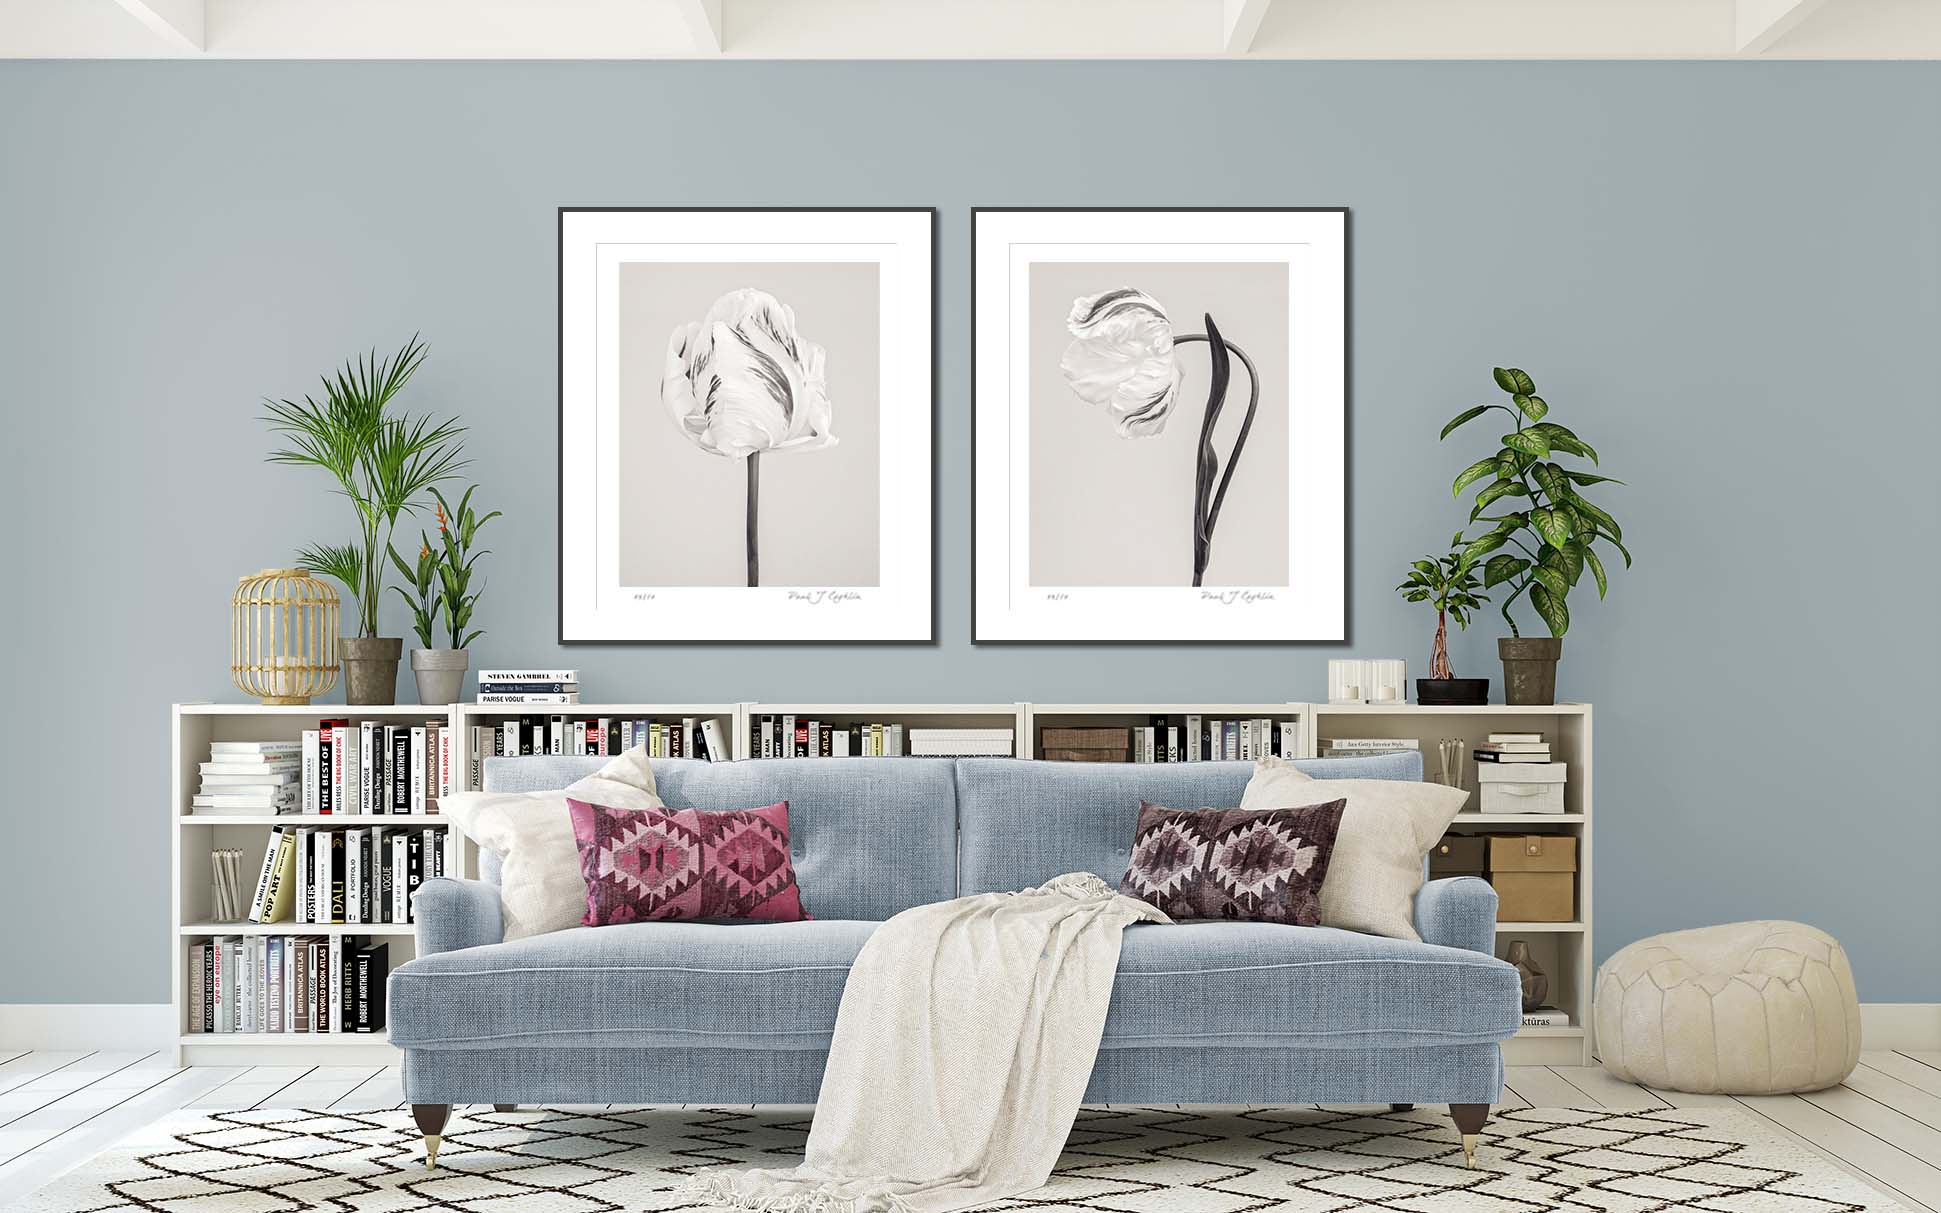 Tulip Madonna I & II. Limited edition photographic prints of a Madonna tulip by fine art photographer Paul Coghlin FBIPP.